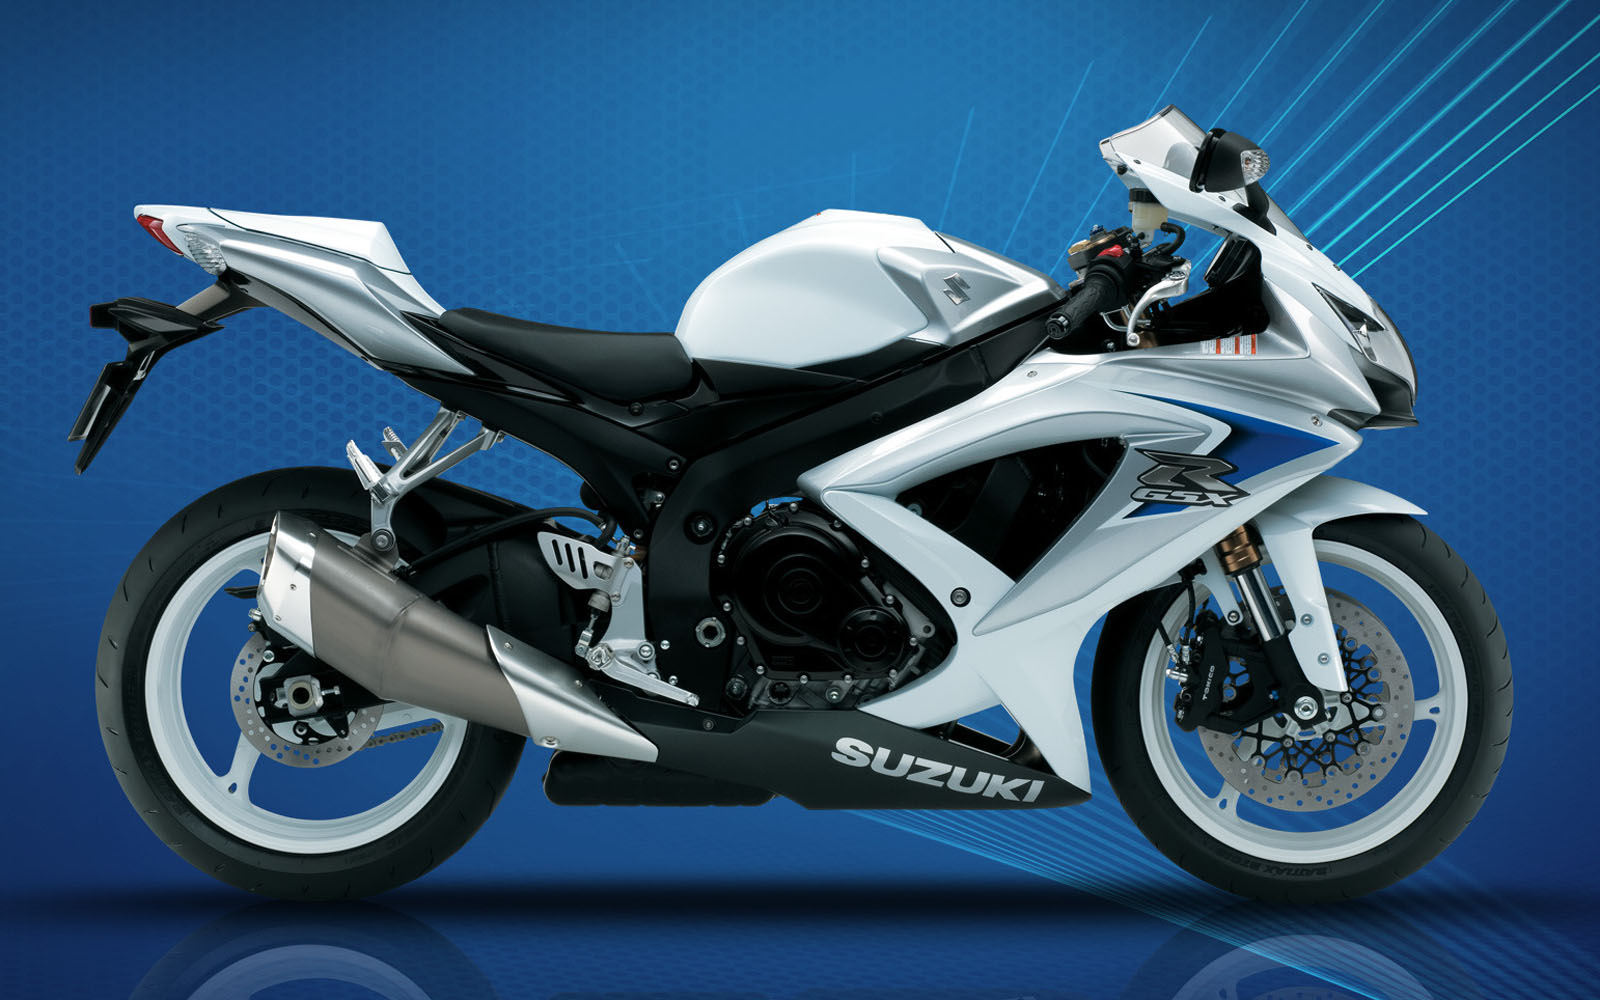 wallpapers suzuki gsx r 600 wallpapers. Black Bedroom Furniture Sets. Home Design Ideas